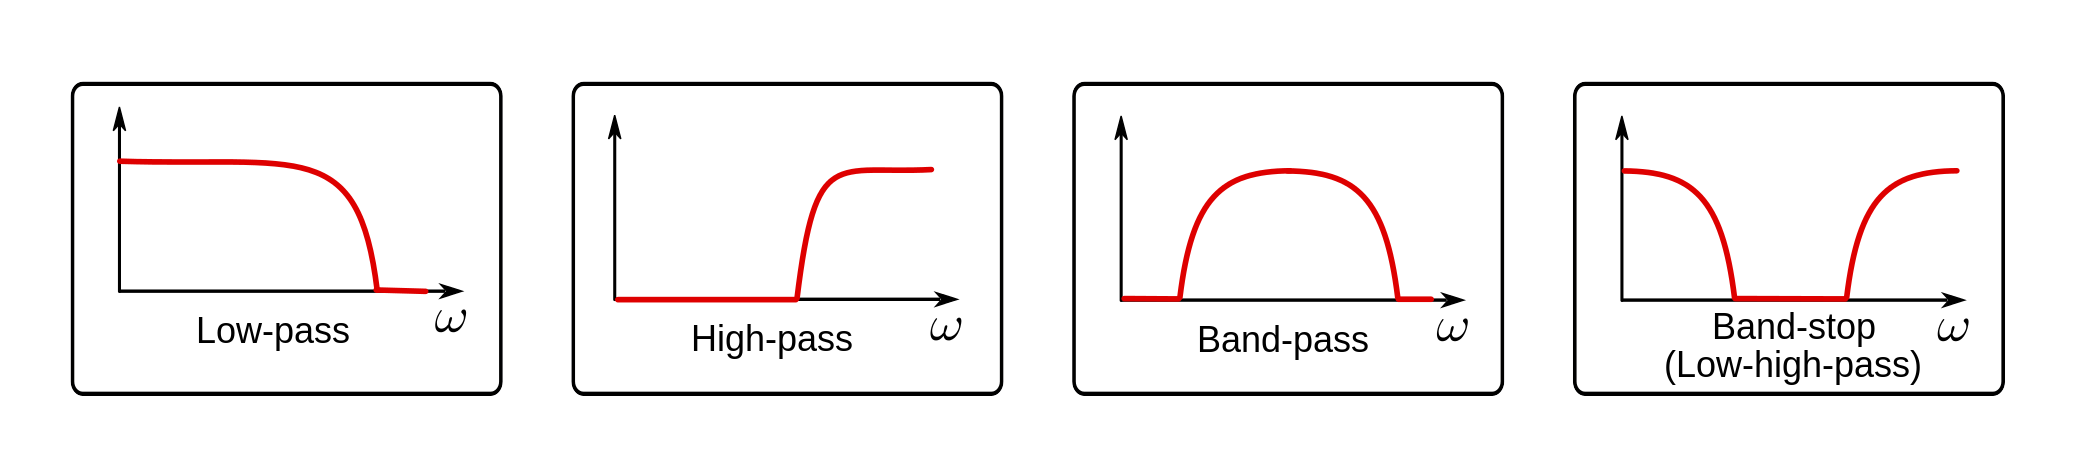 Arduino Tutorial: Simple High-pass, Band-pass and Band-stop Filtering